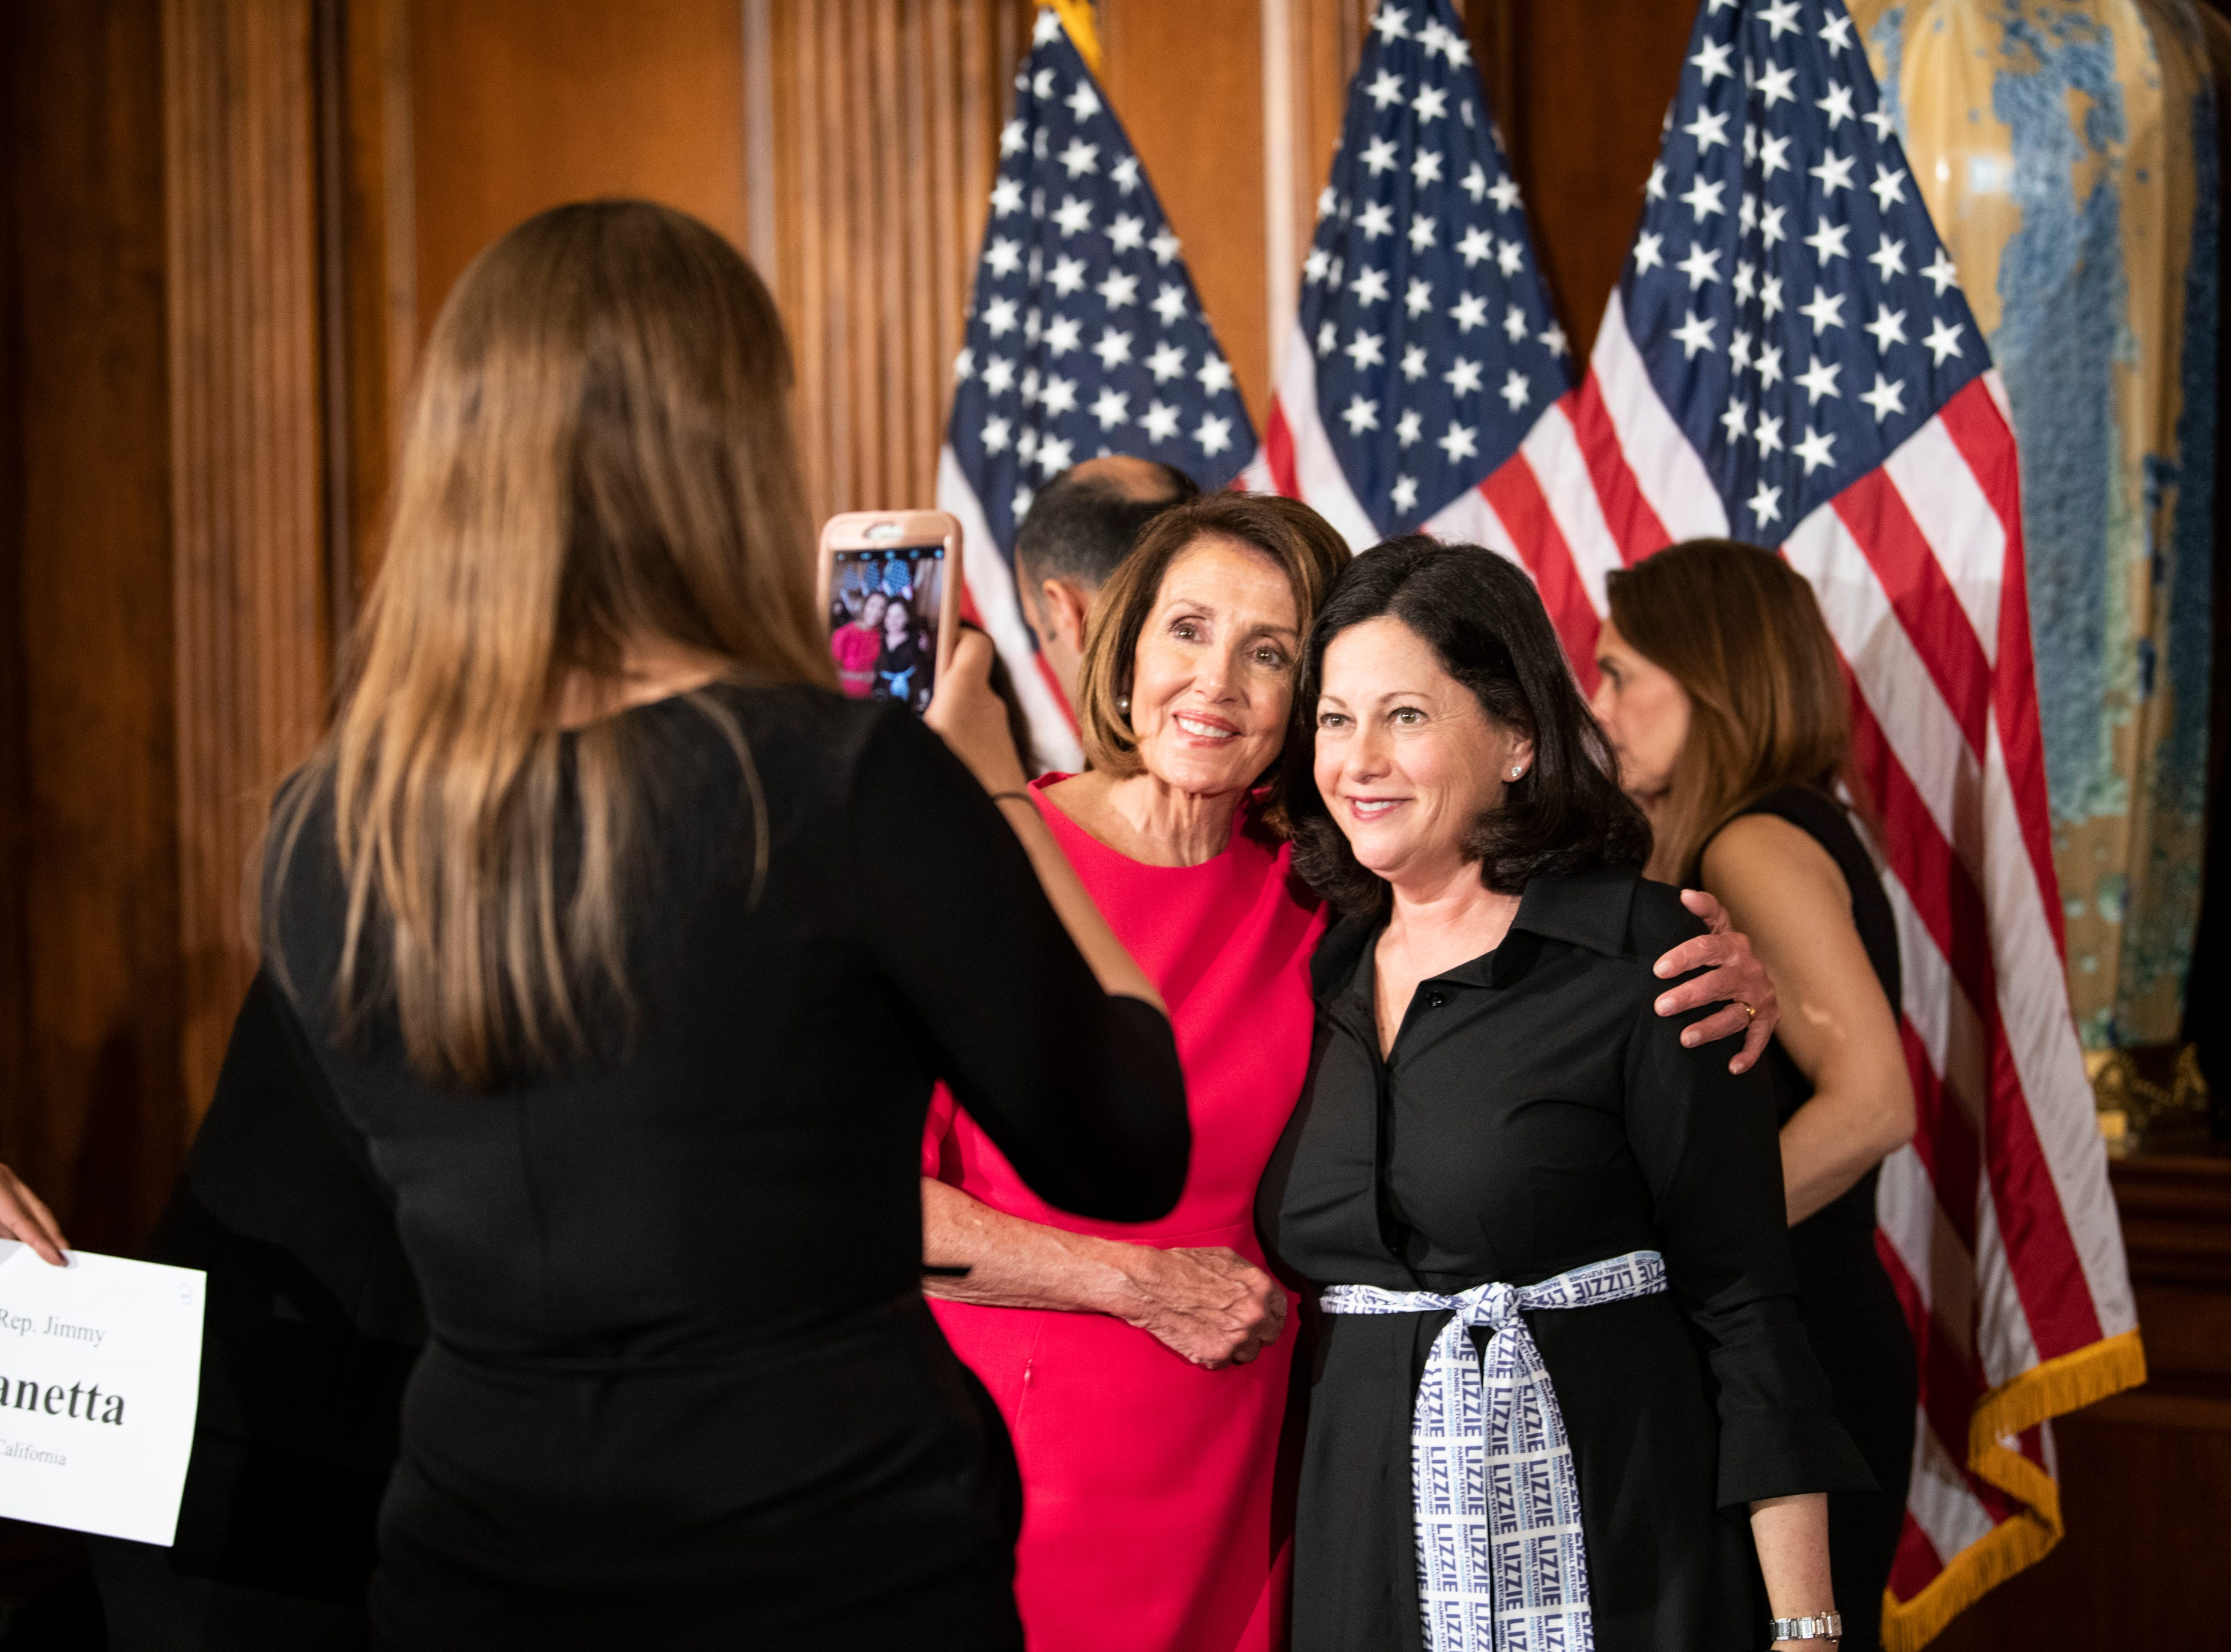 House Speaker Nancy Pelosi poses with a member of Representative Lizzie Fletcher's (D, TX) family during the swearing in ceremony.